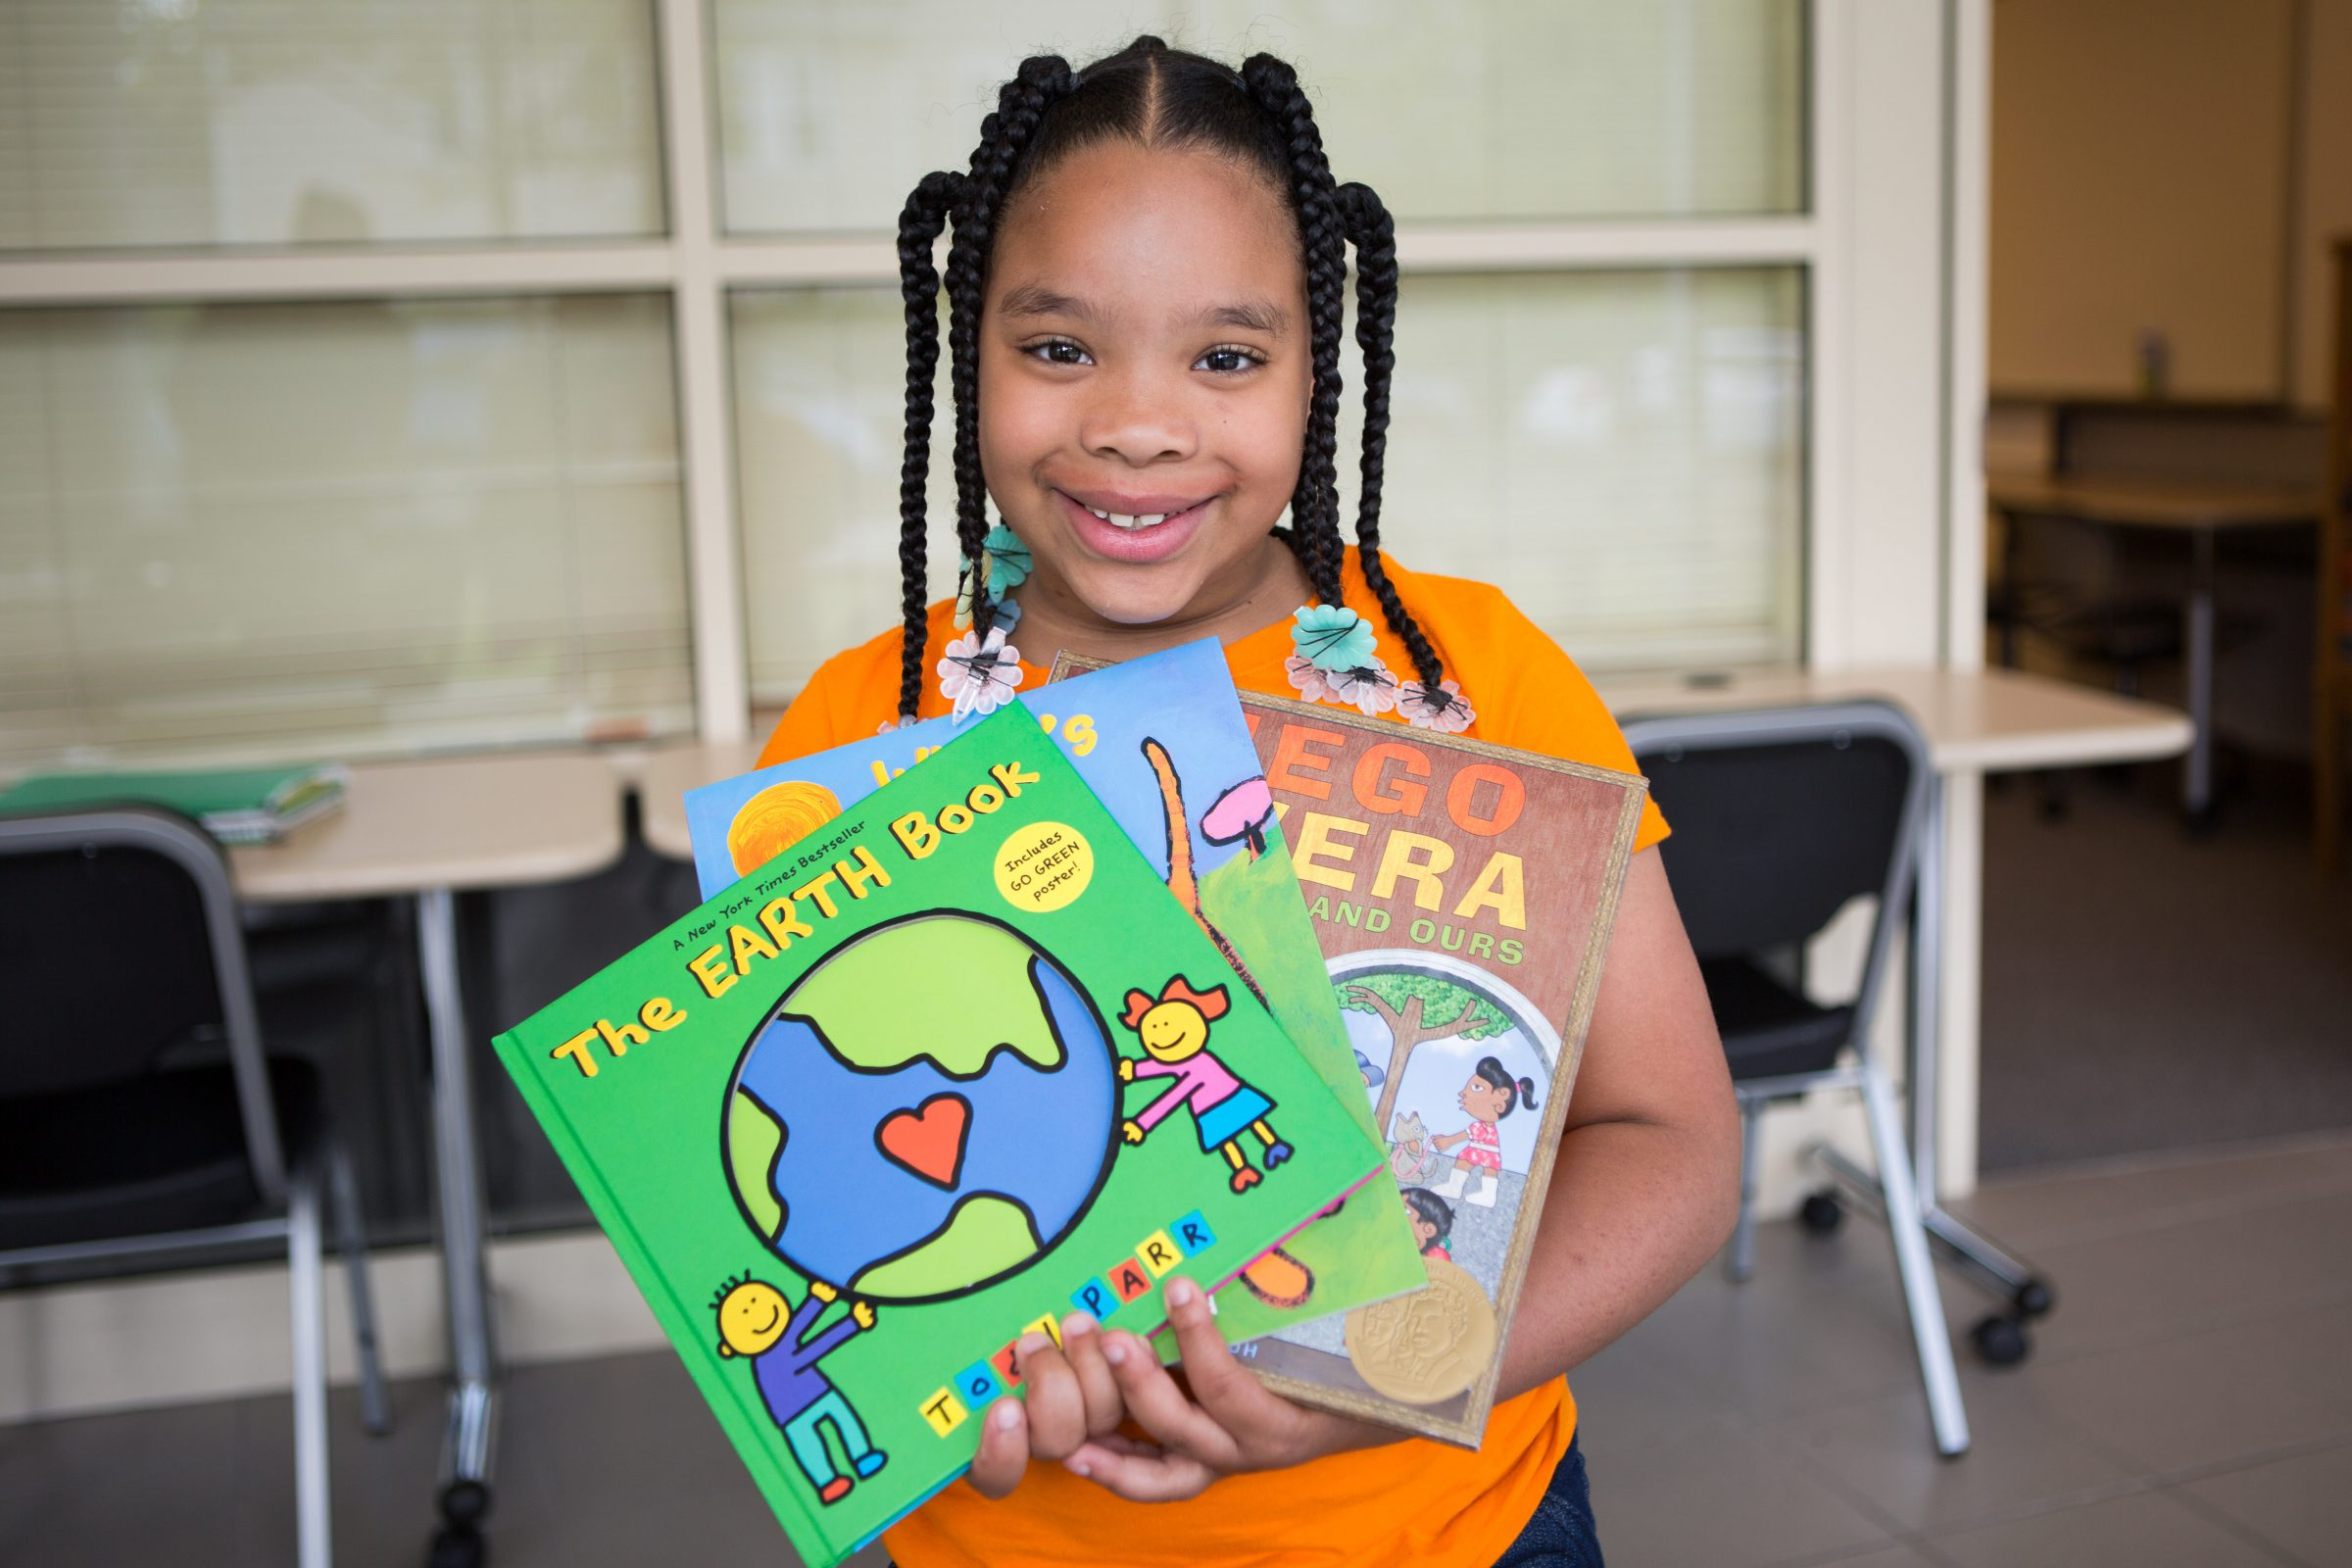 NHR student happily displays books she received in a giveaway.